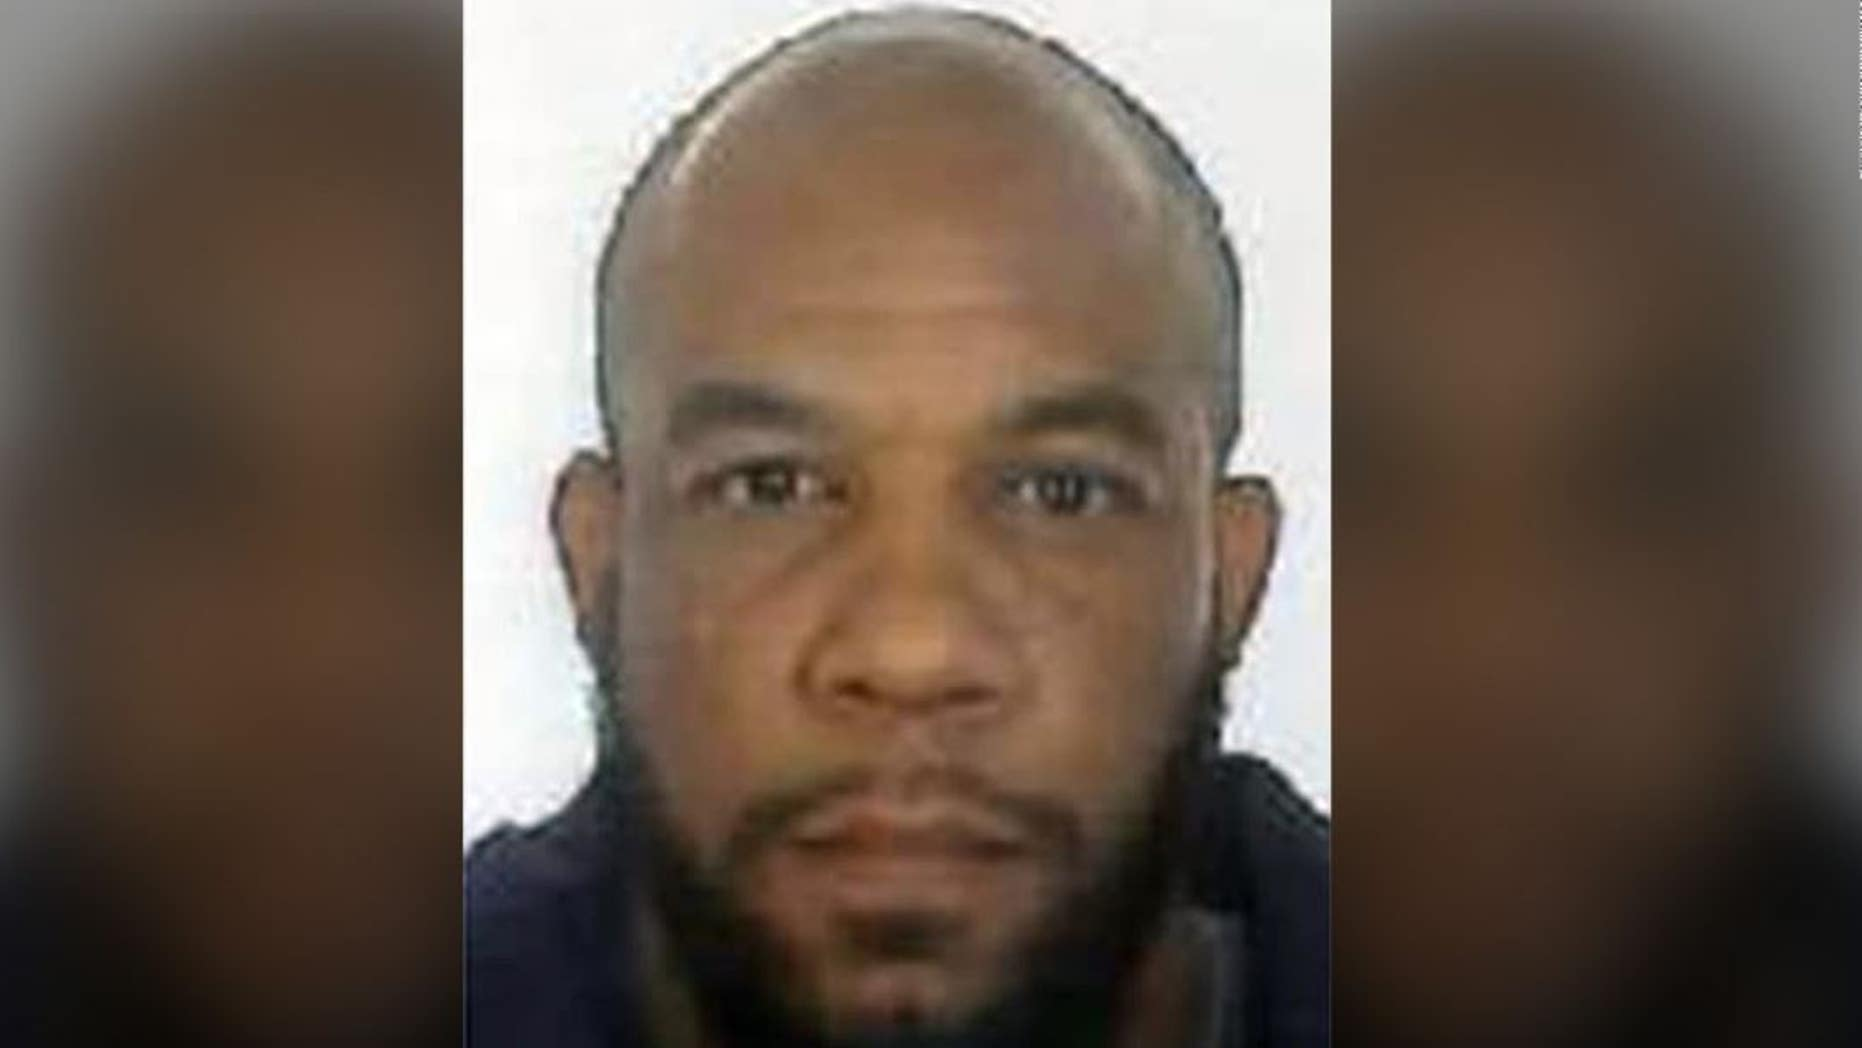 Khalid Masood was behind a deadly rampage at the London Bridge on March 22, 2017, authorities said.